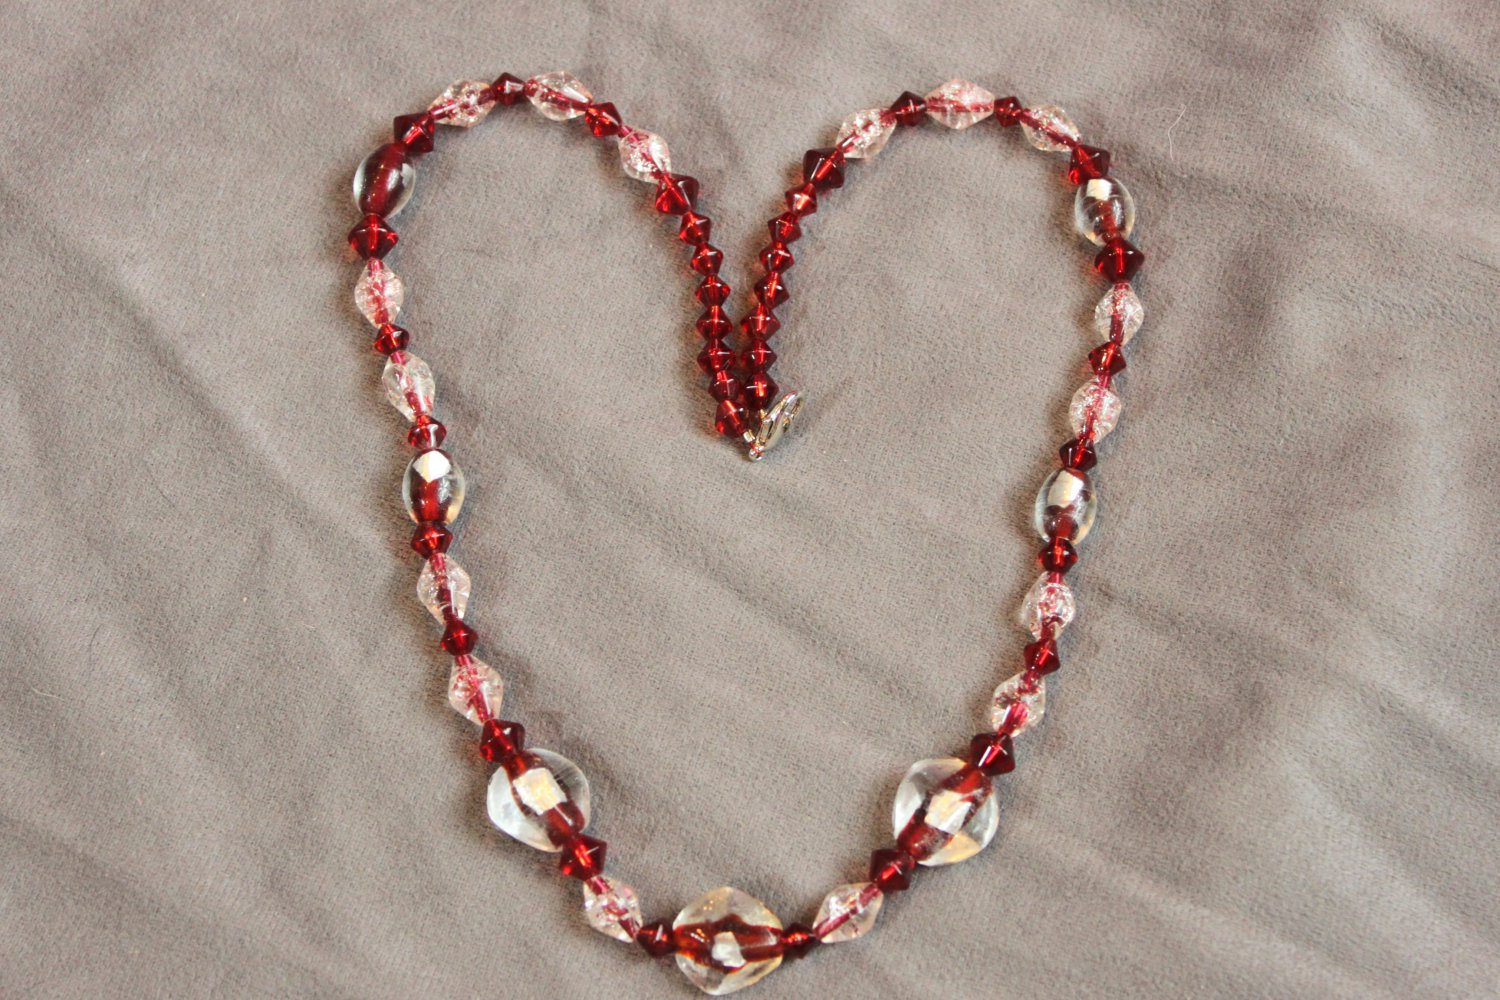 Handmade Red and Silver Necklace